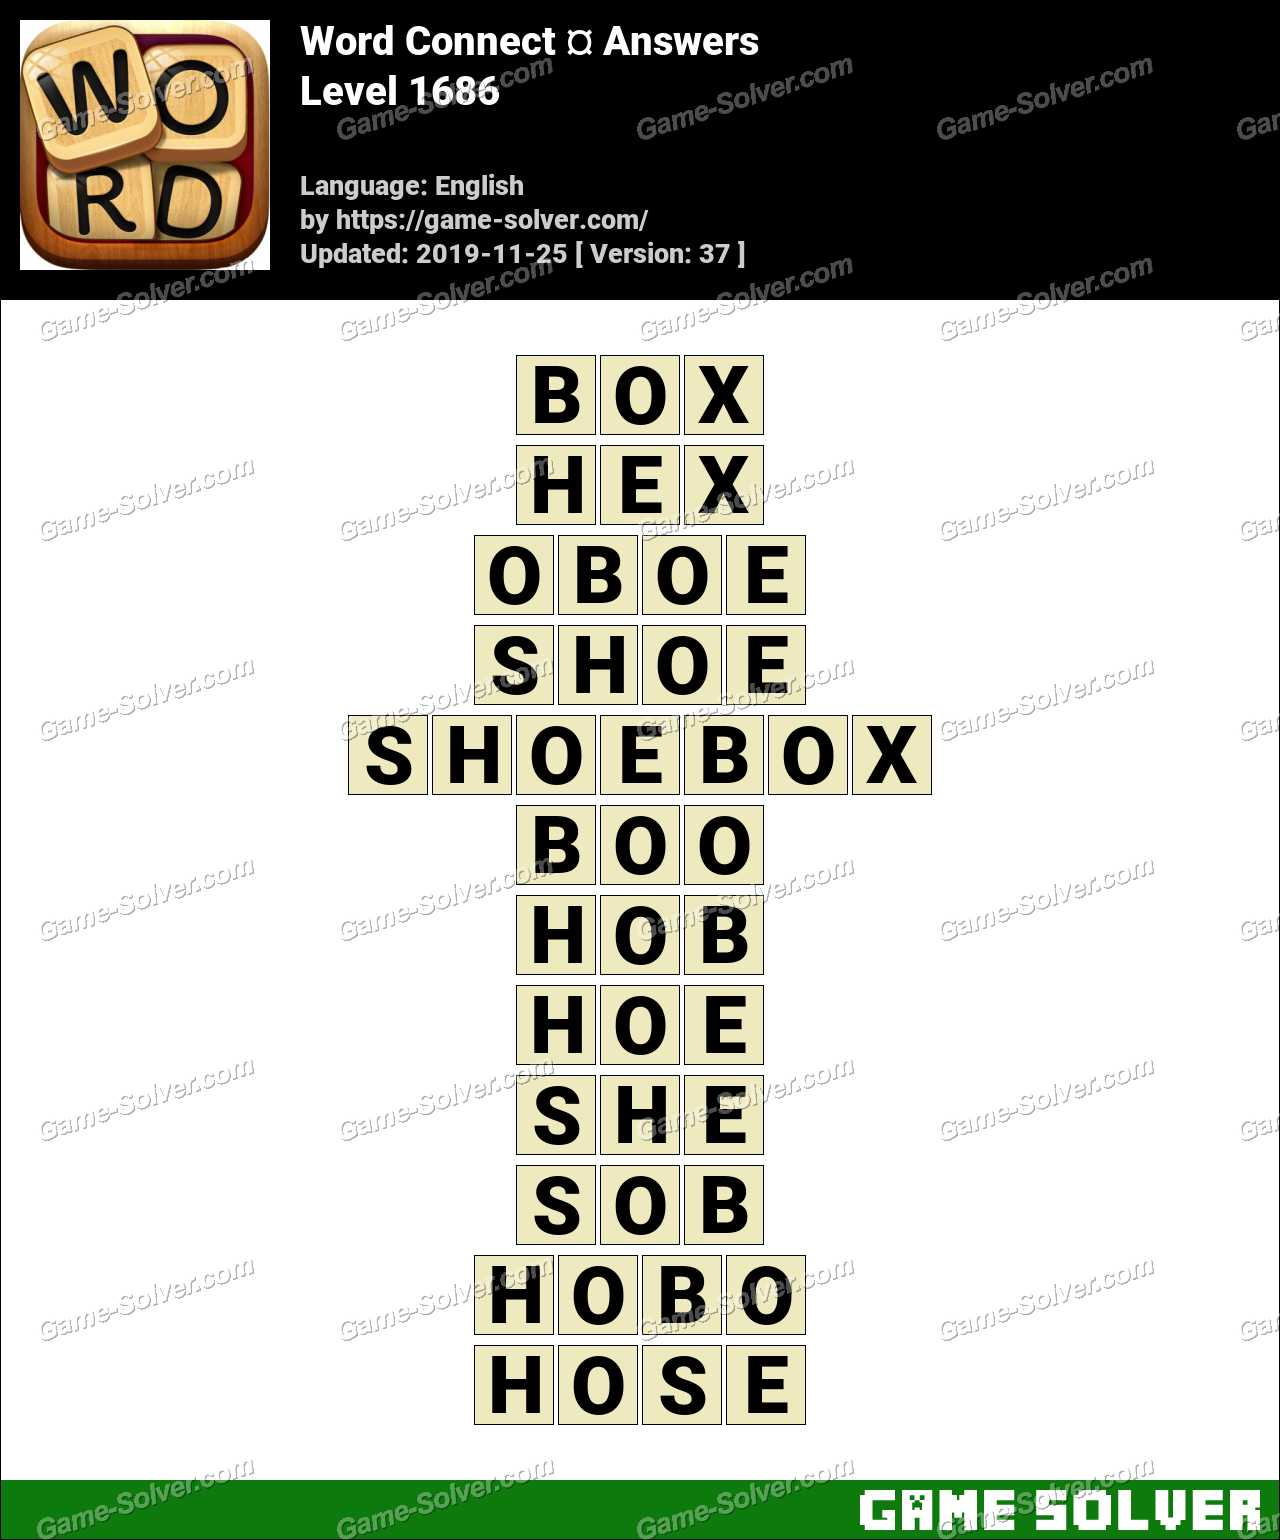 Word Connect Level 1686 Answers